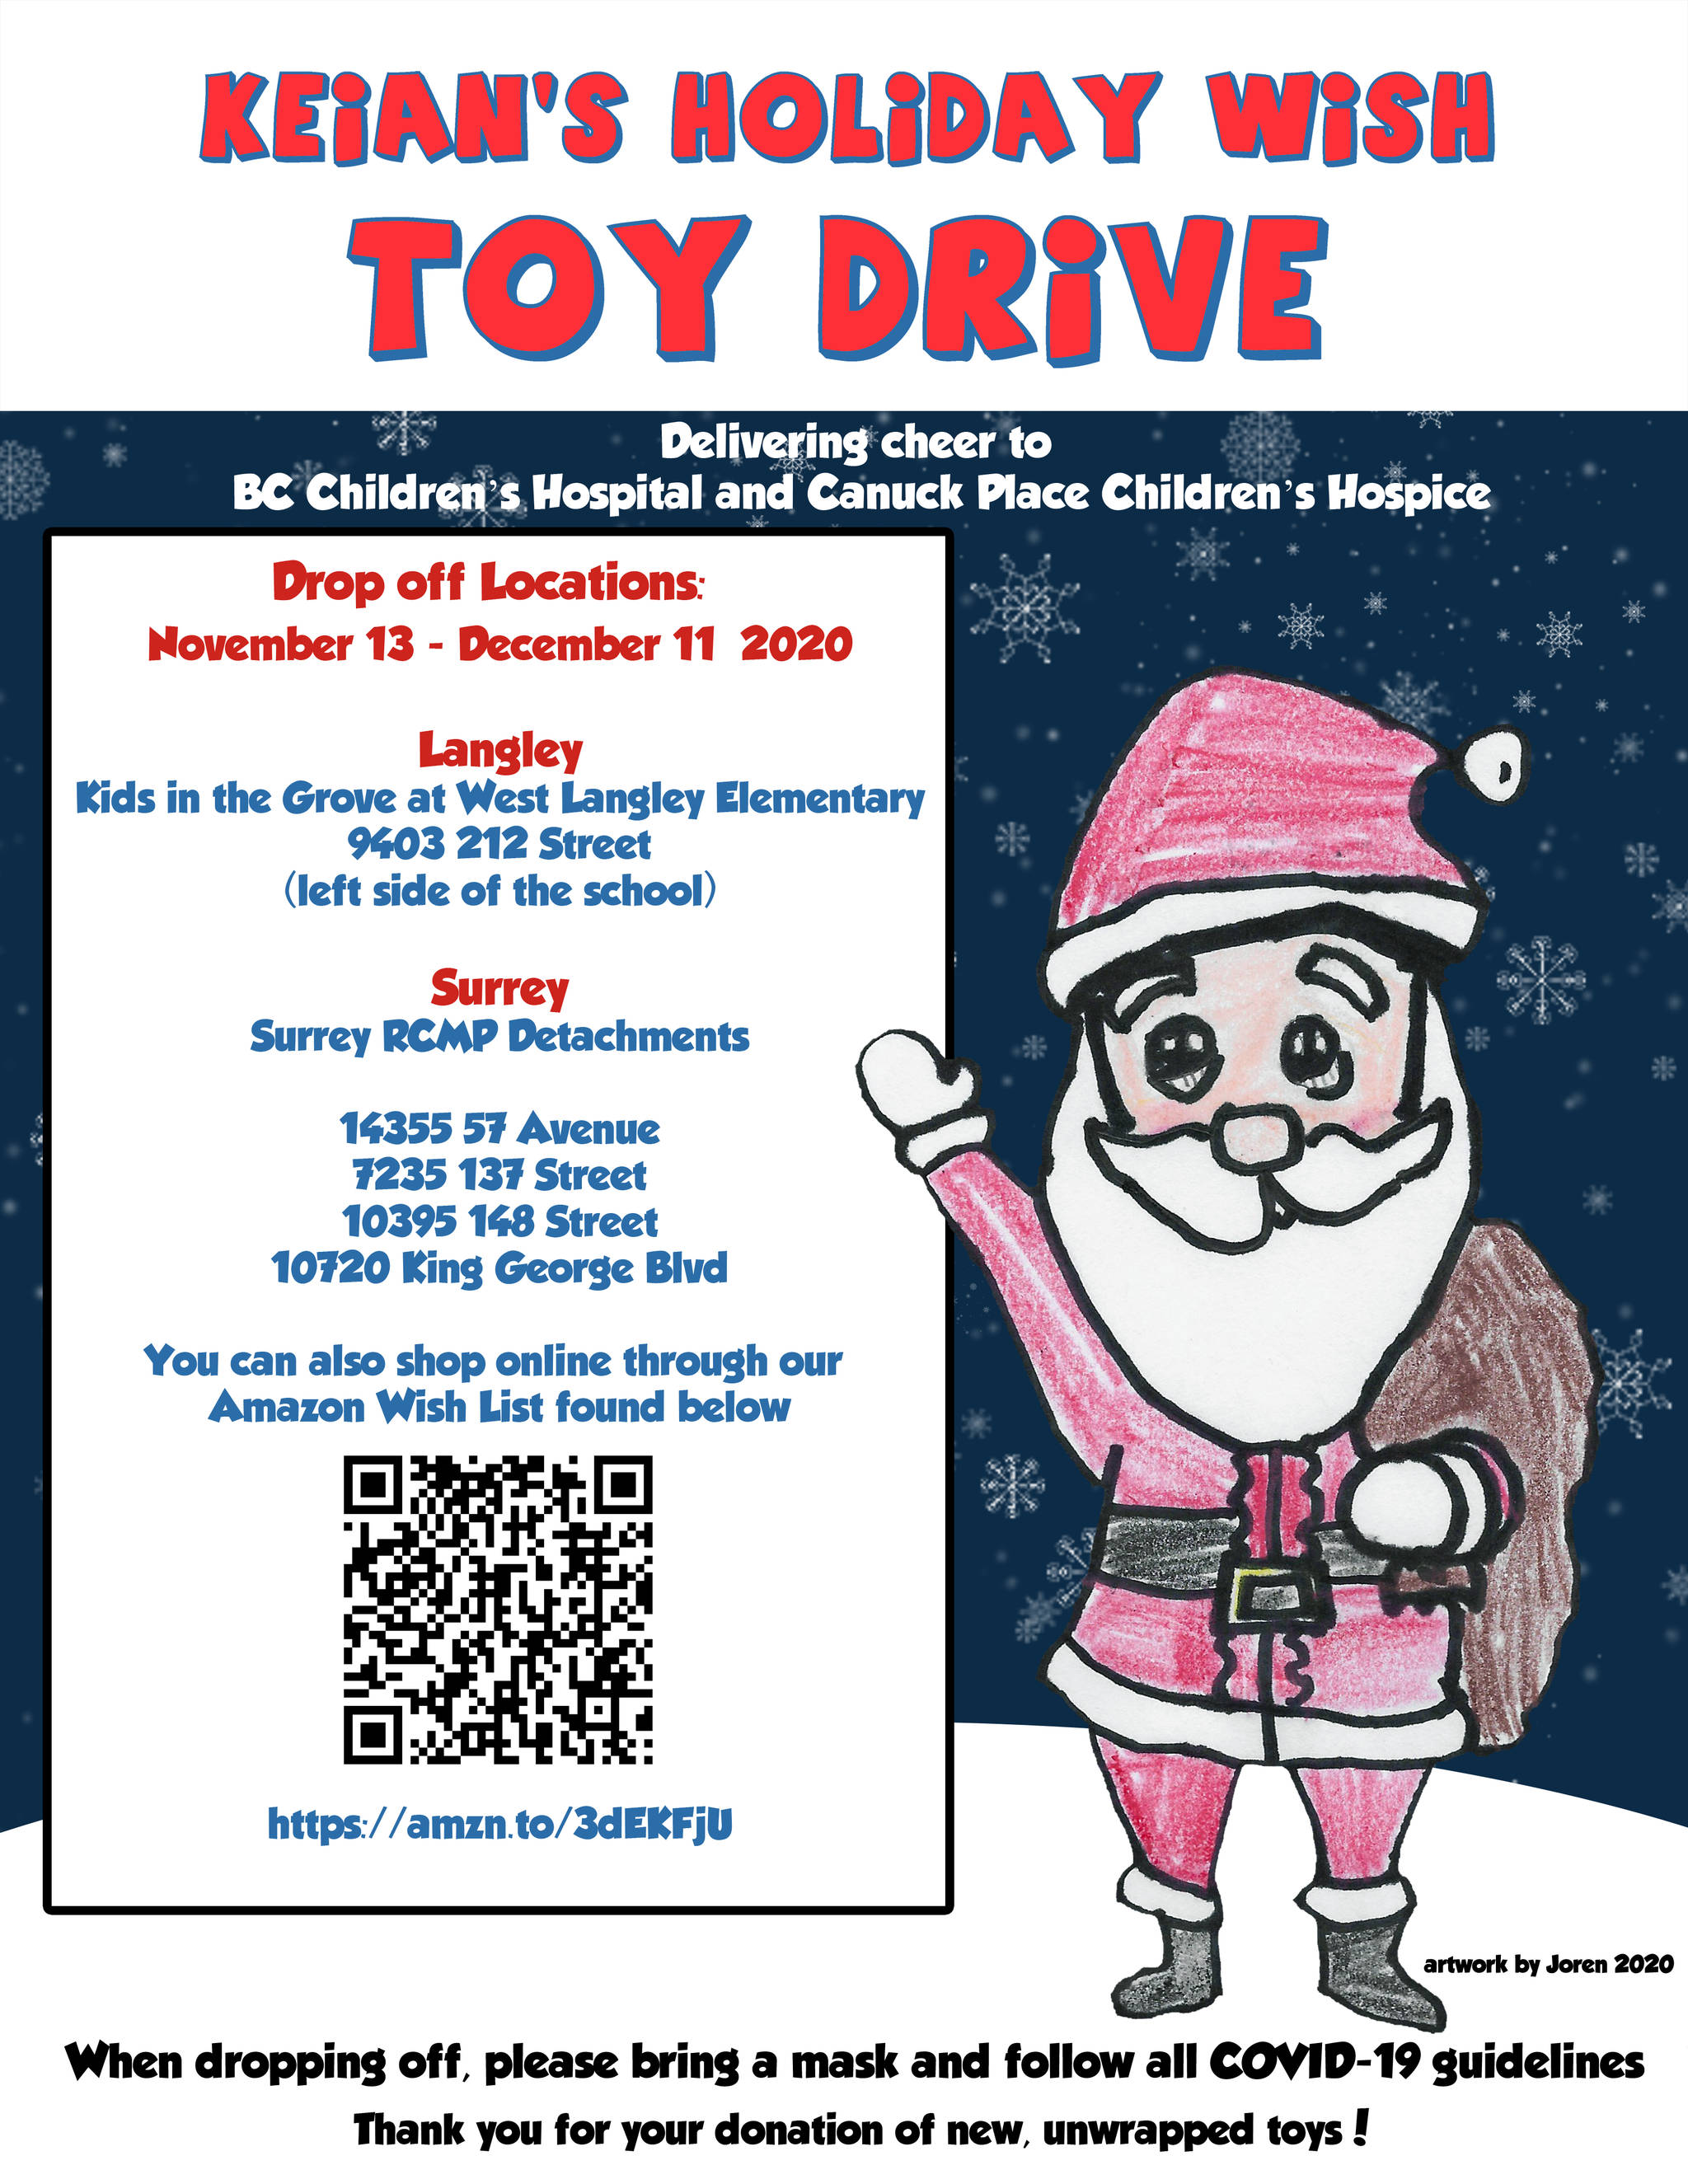 Keian's Holiday Wish Toy Drive run Nov. 13 to Dec. 13. Shop the wish list by visiting the website on the poster or scan the QR code on your cellphone app. Gifts can be sent directly to the Blundell family. (Blundell family/Special to Langley Advance Times)